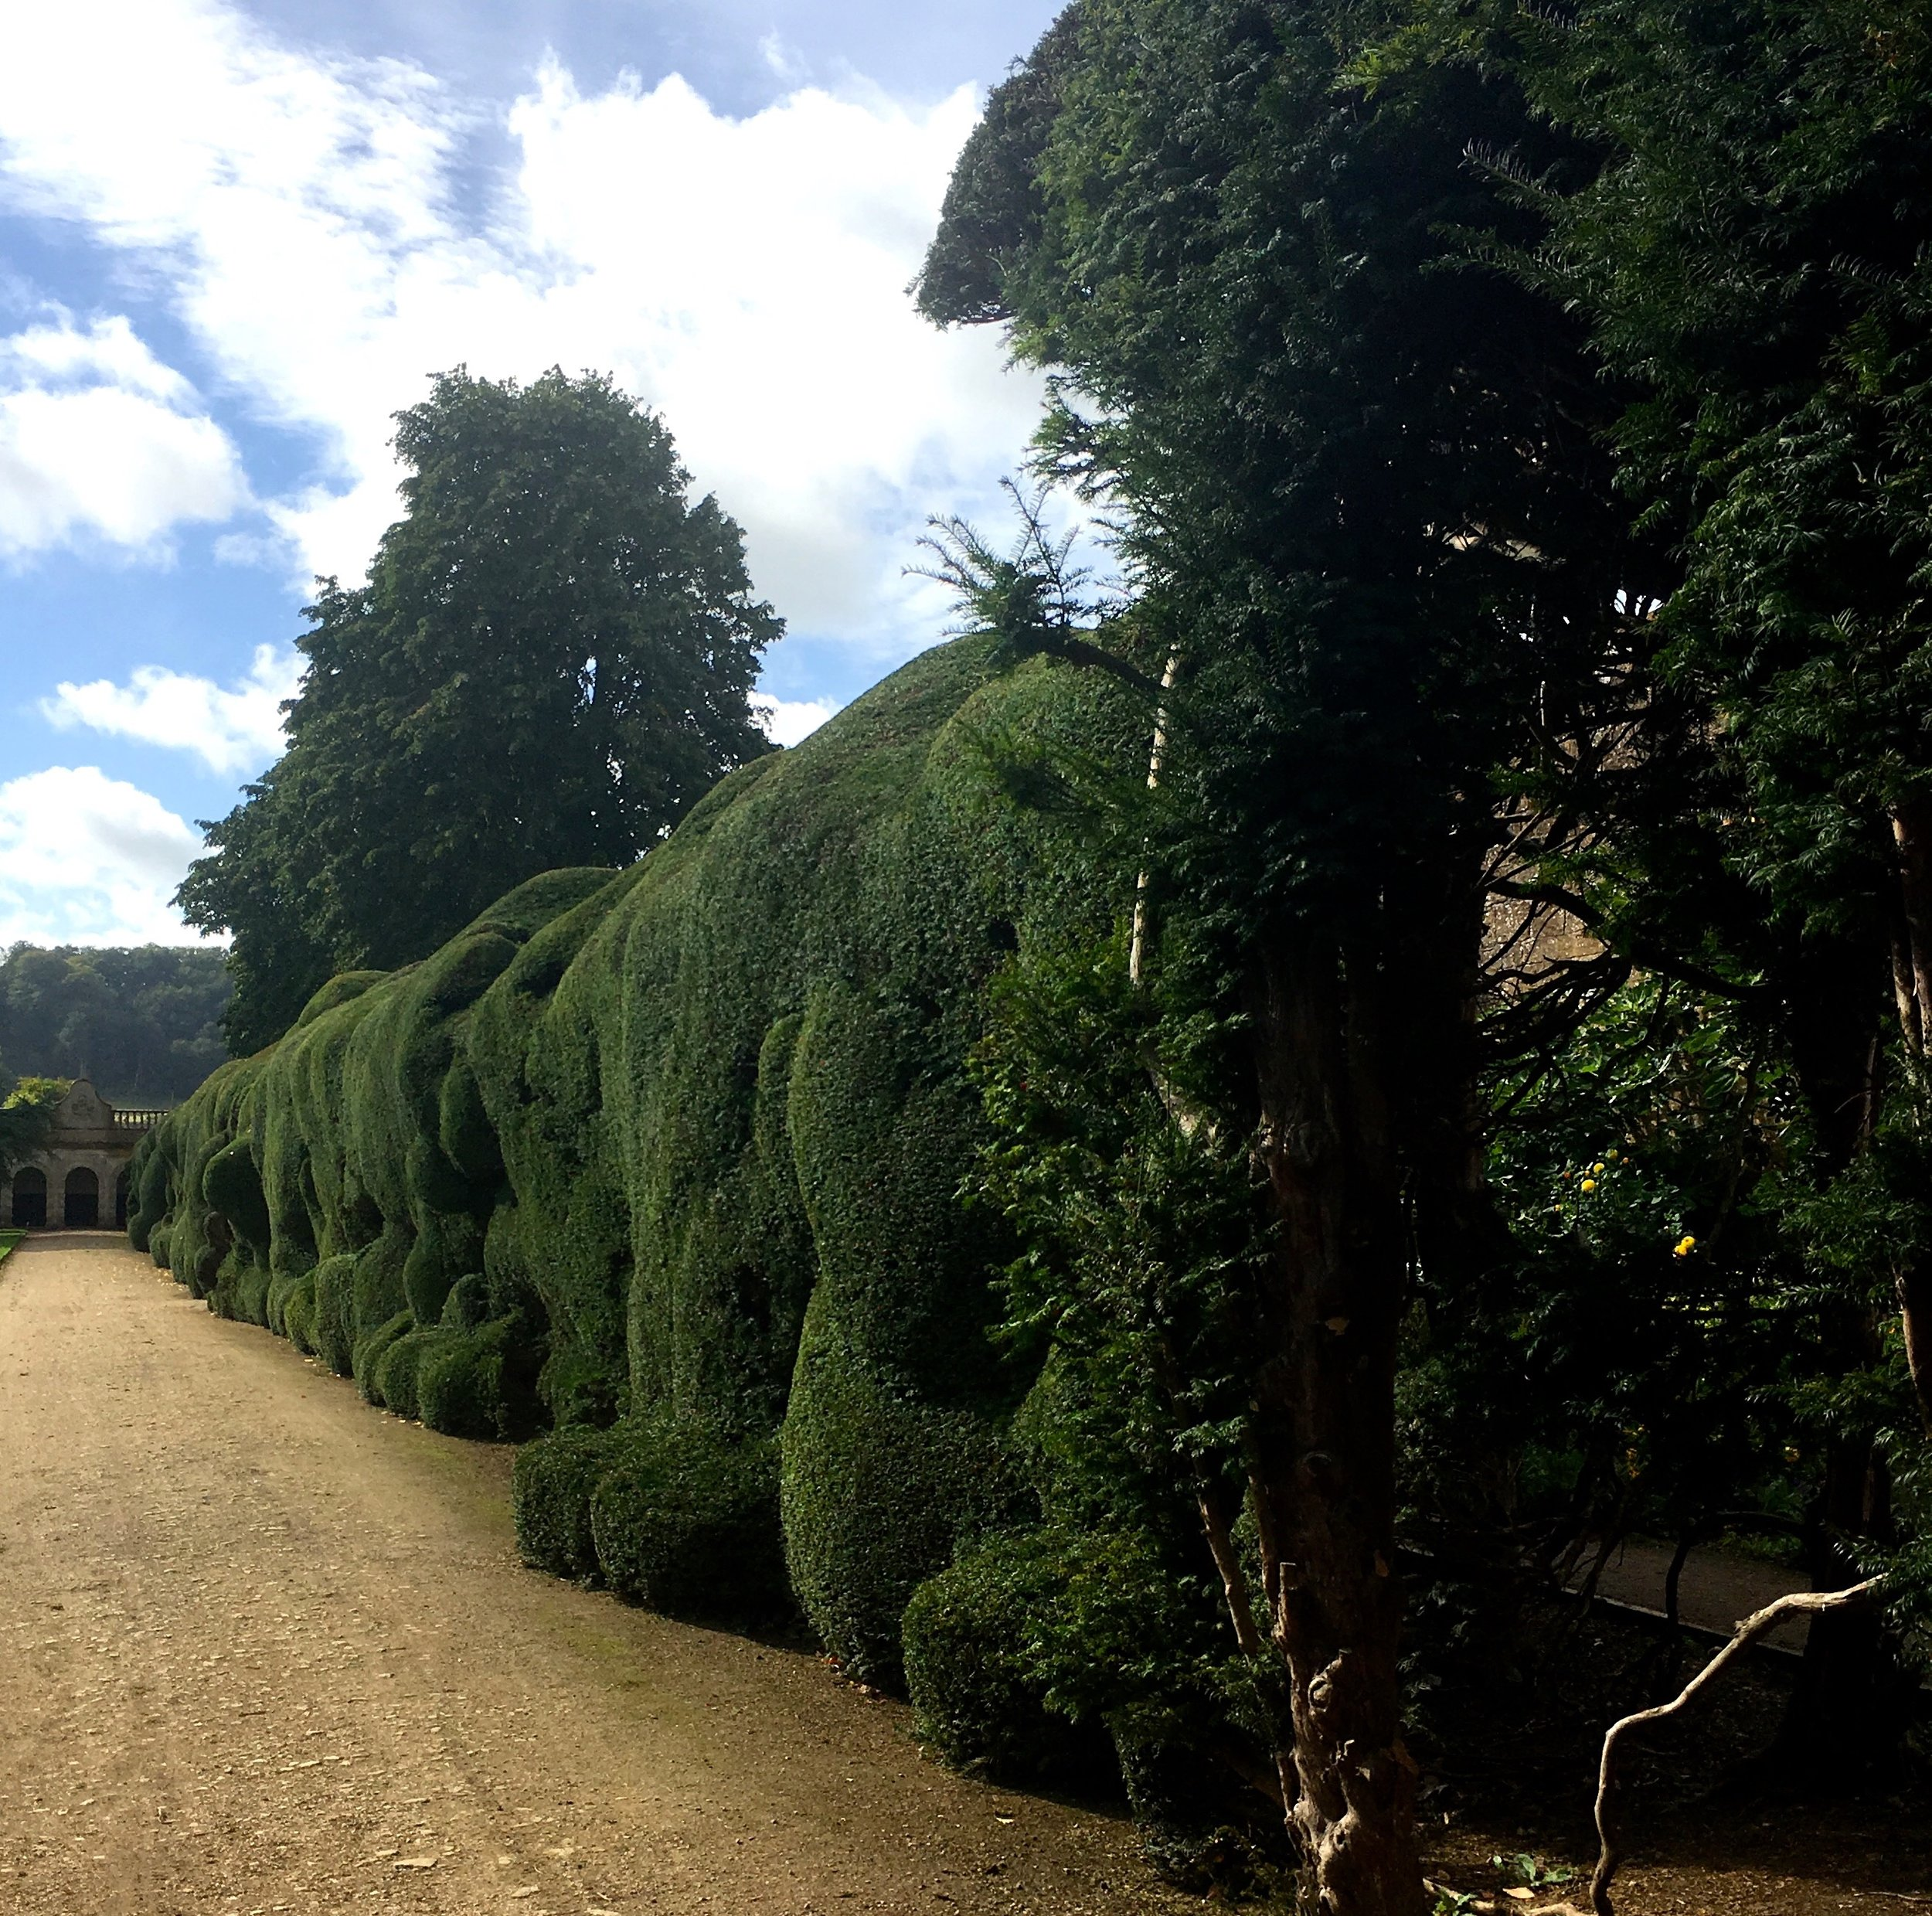 Wibbly Wobbly hedges at Montacute House